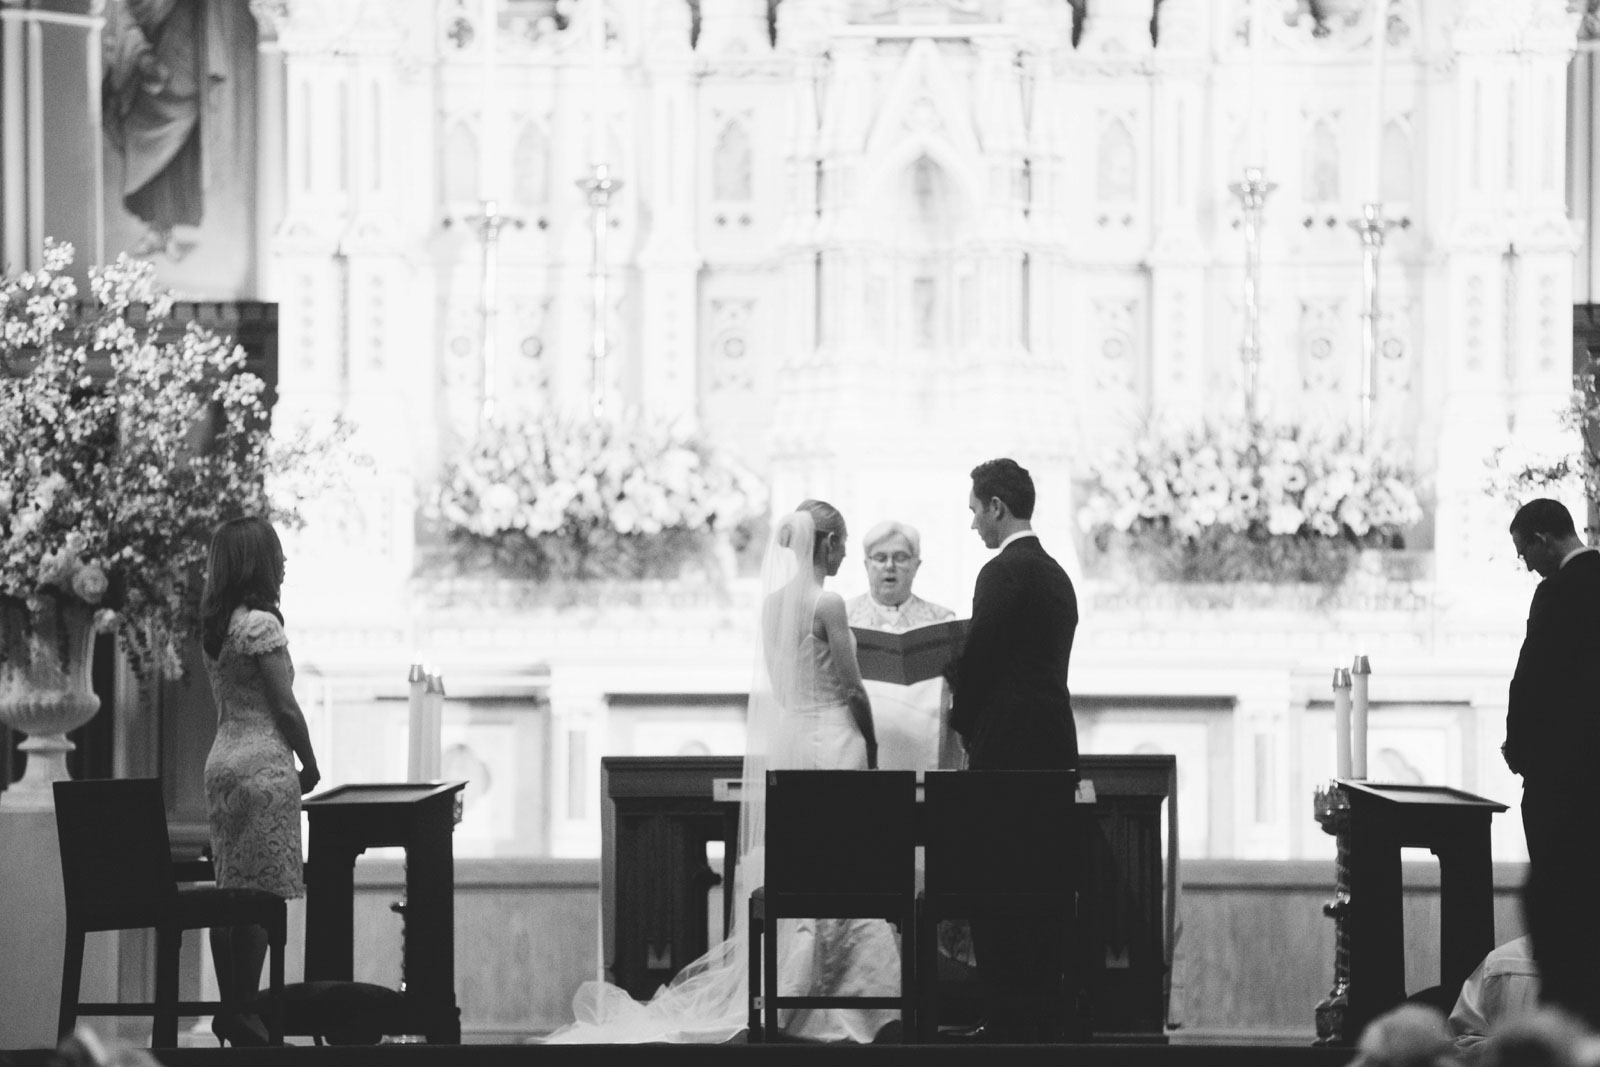 black and white silhouette of bride and groom standing at altar at church ceremony